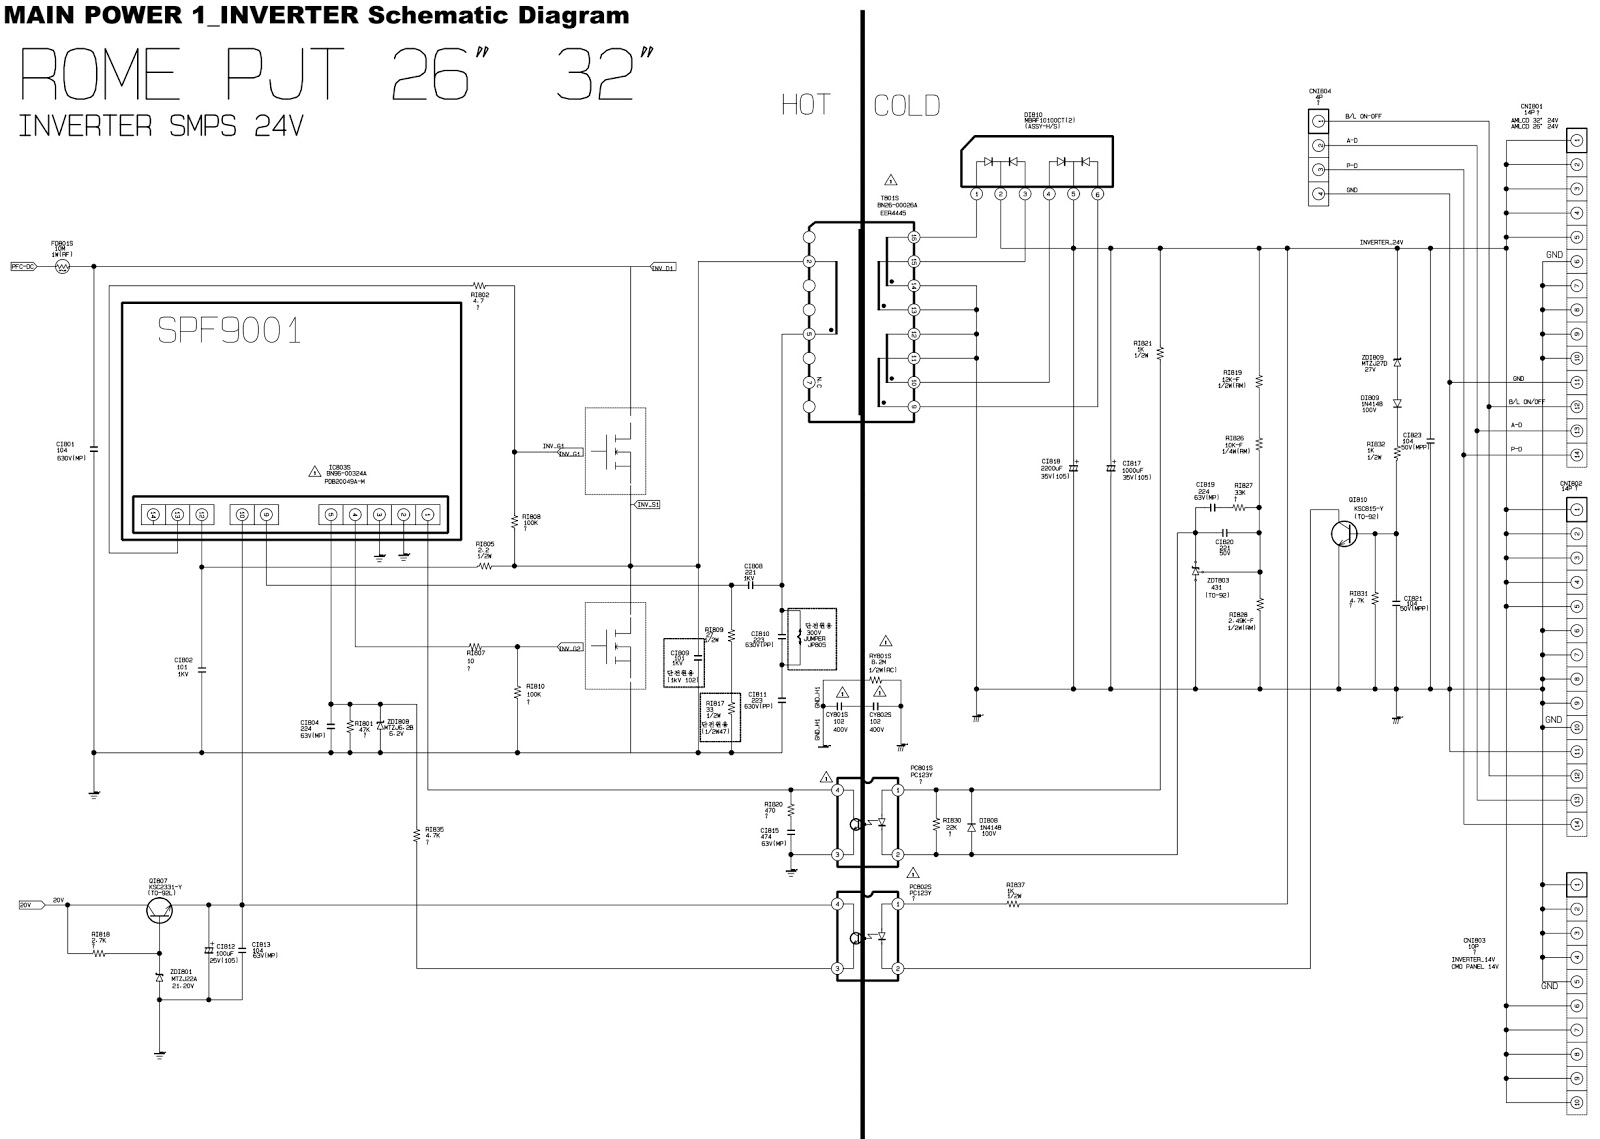 Click on the circuit diagrams to magnify